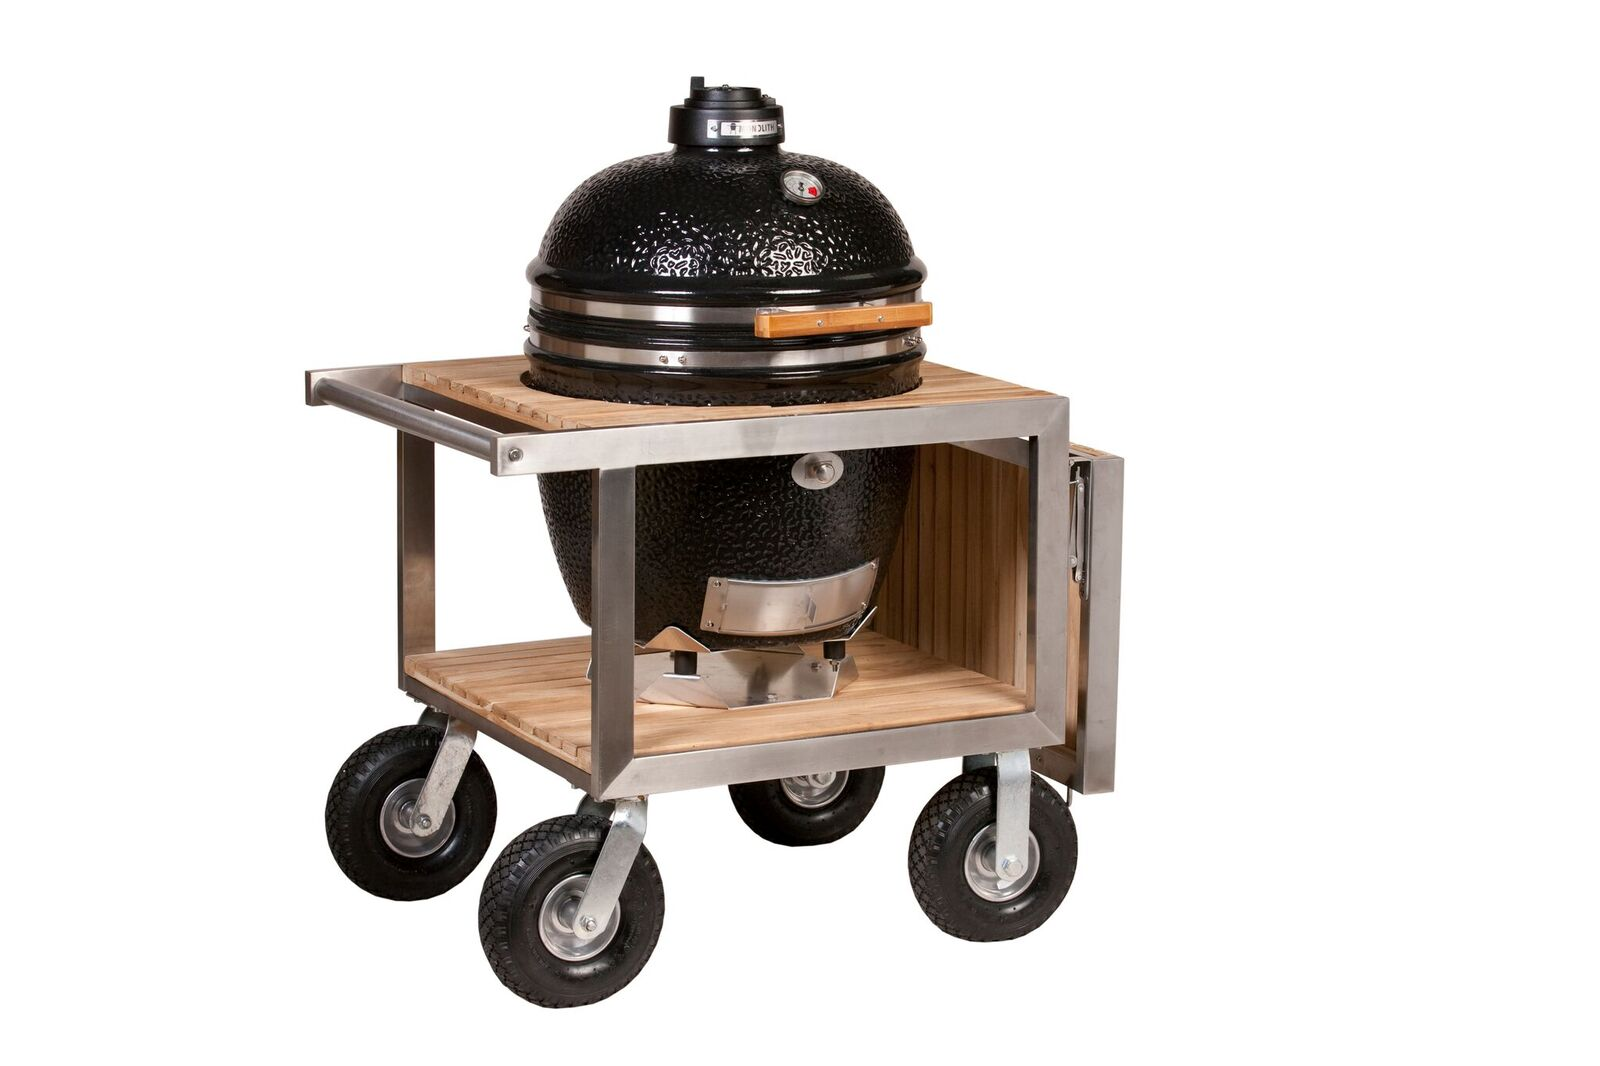 monolith kamado barbecue smokers and grills review classic buggy sidetable outdoor side table for bbq the ceramic grill stainless steel framed with folding shelf patio coffee iron